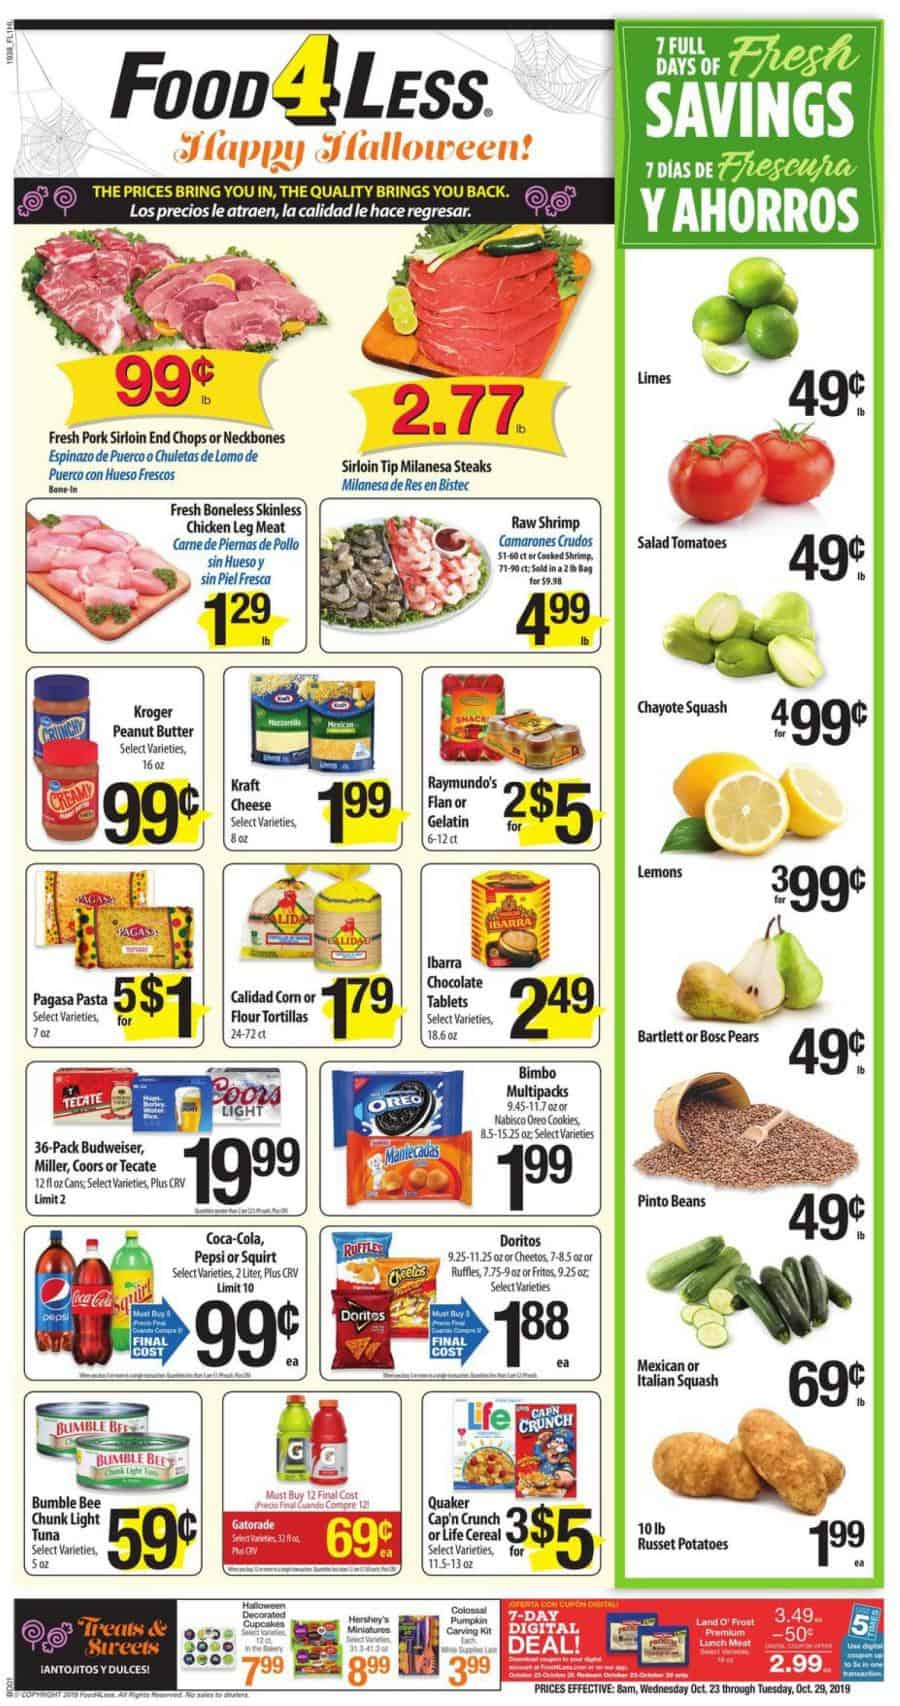 Food 4 Less ad this week